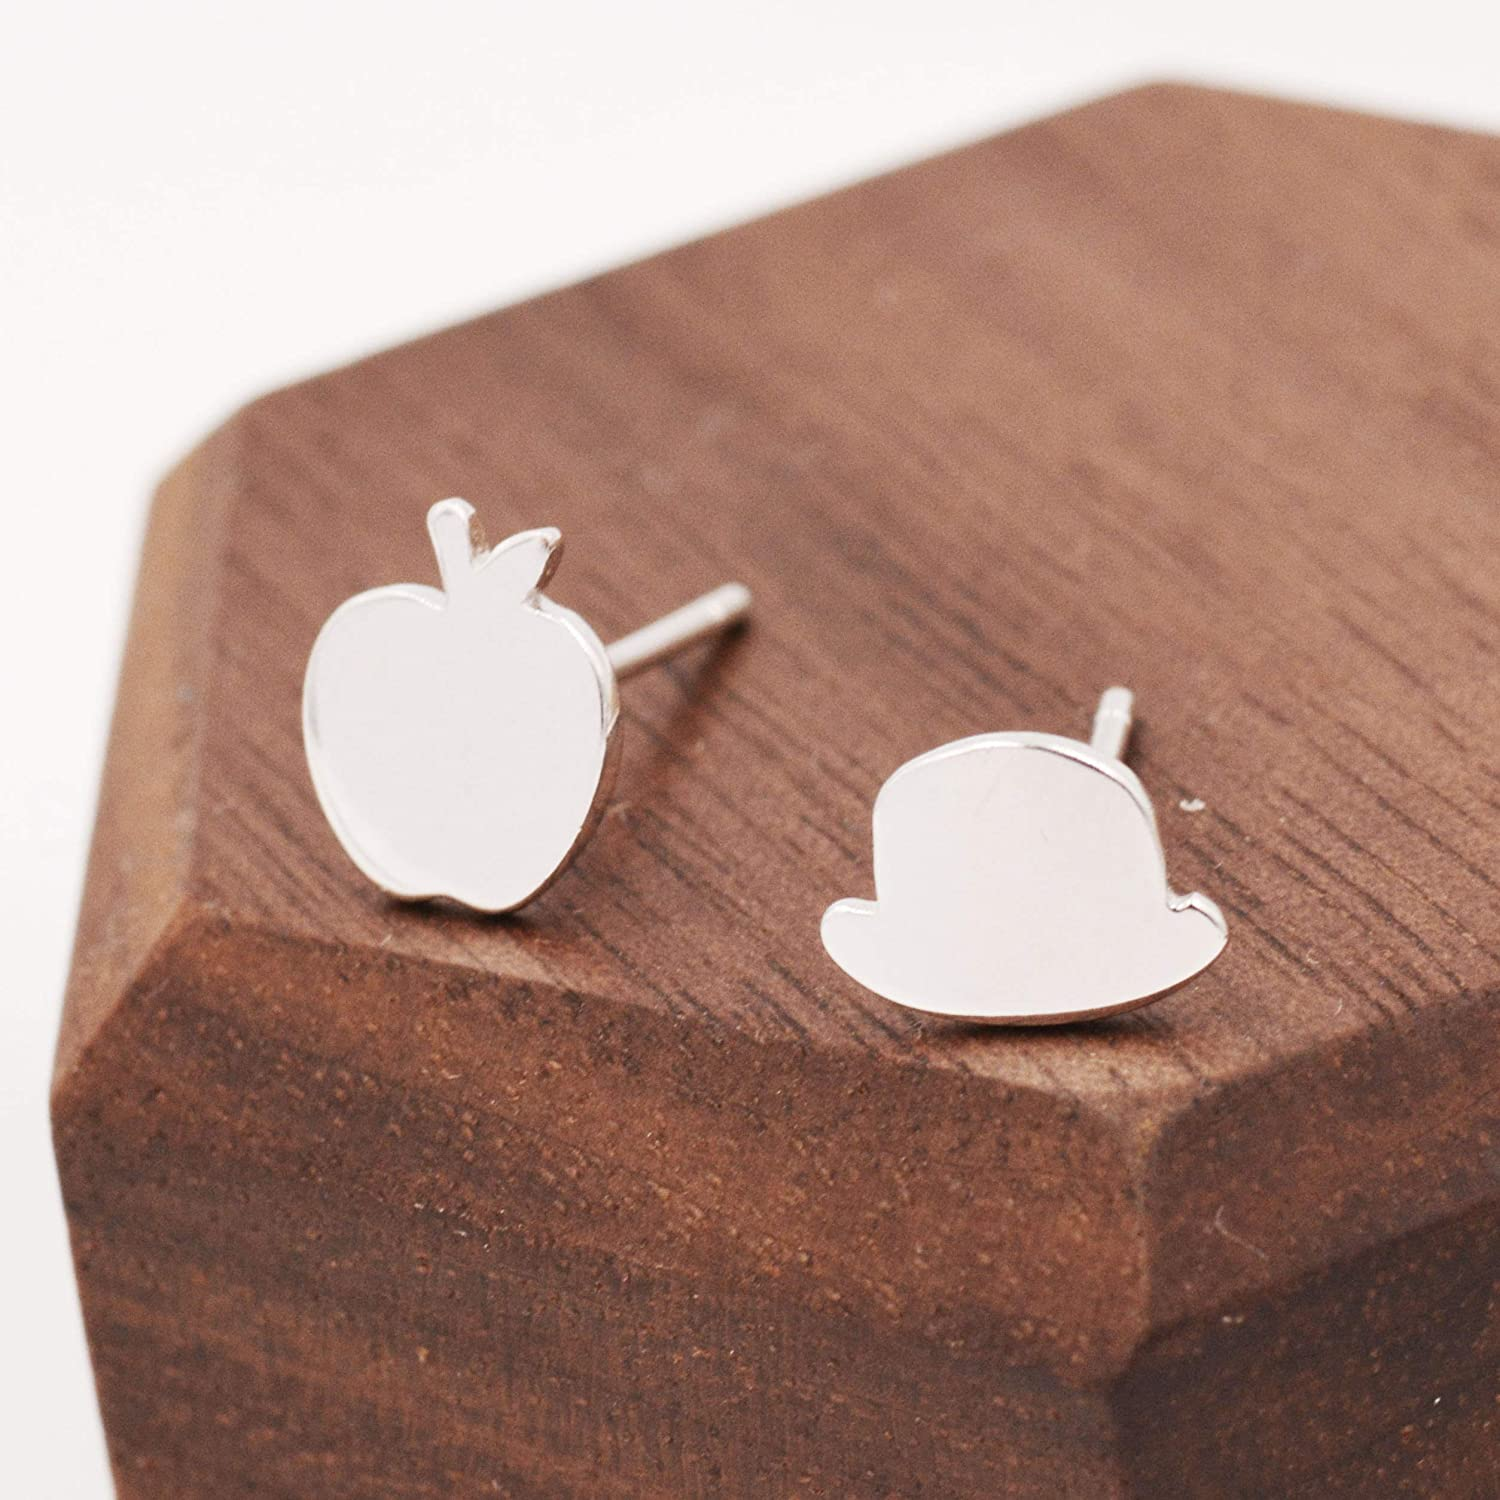 Magritte's Apple and Bowler Hat Mismatched Stud Earrings in Sterling Silver - Surrealism Stud Earrings - Painting Inspired Earrings